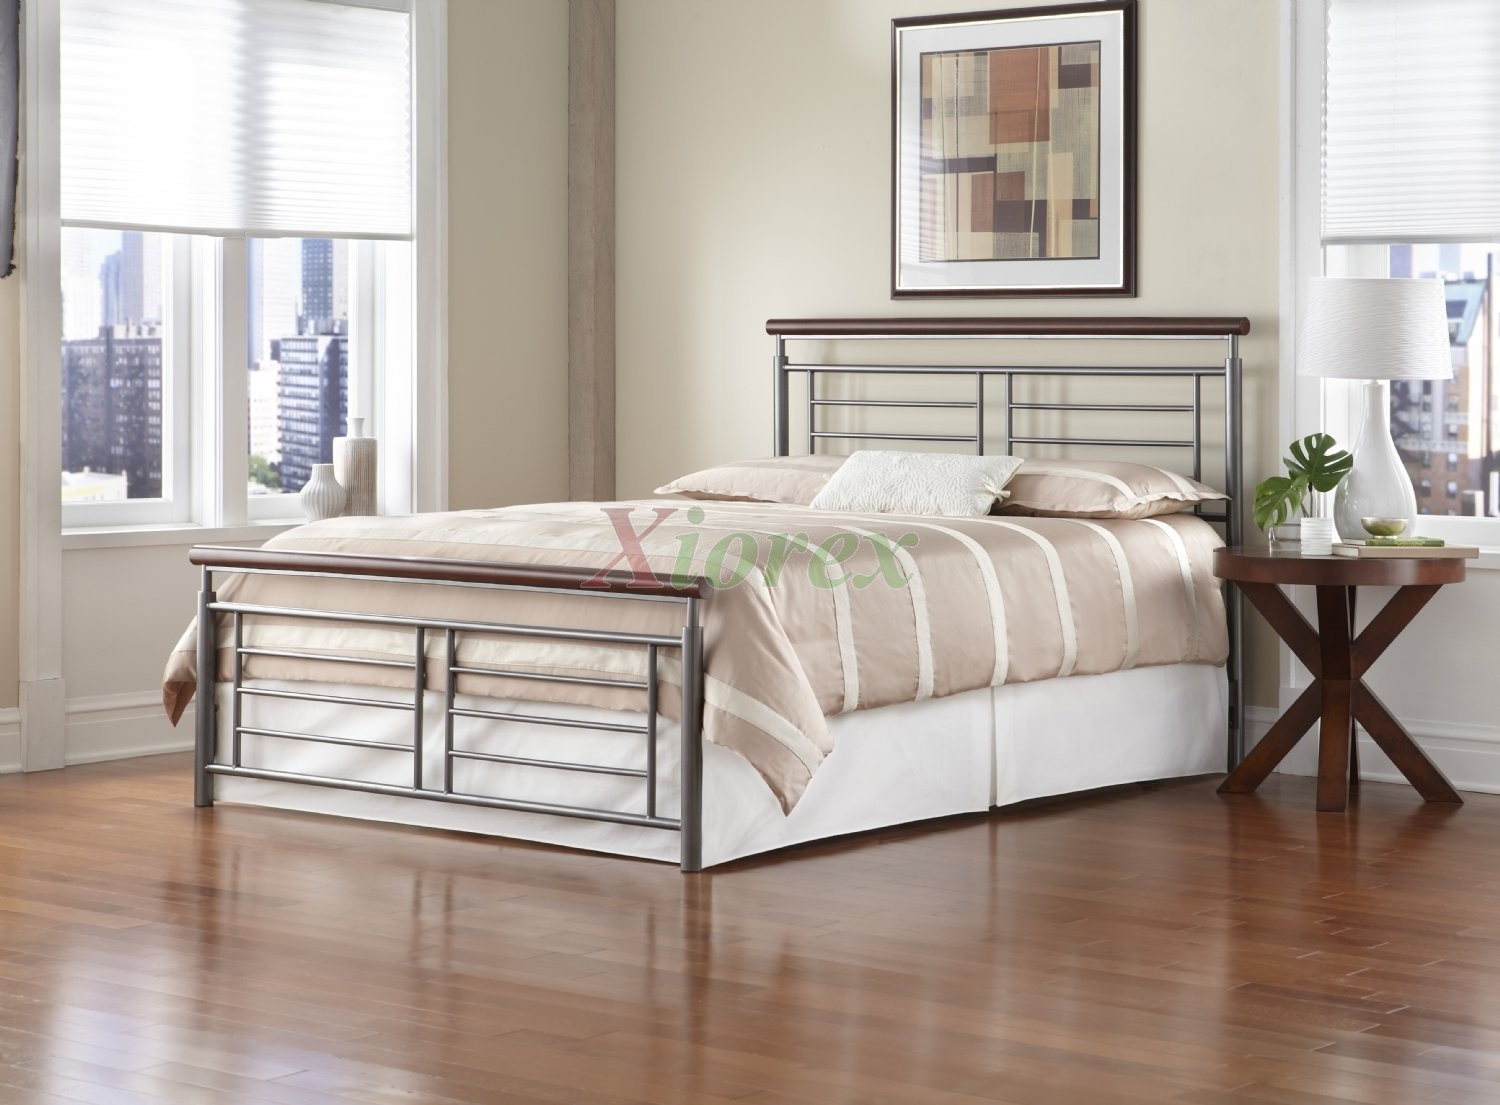 Fontane bed w cherry metal silver finish by fashion bed group xiorex - Simple bedroom full set ...